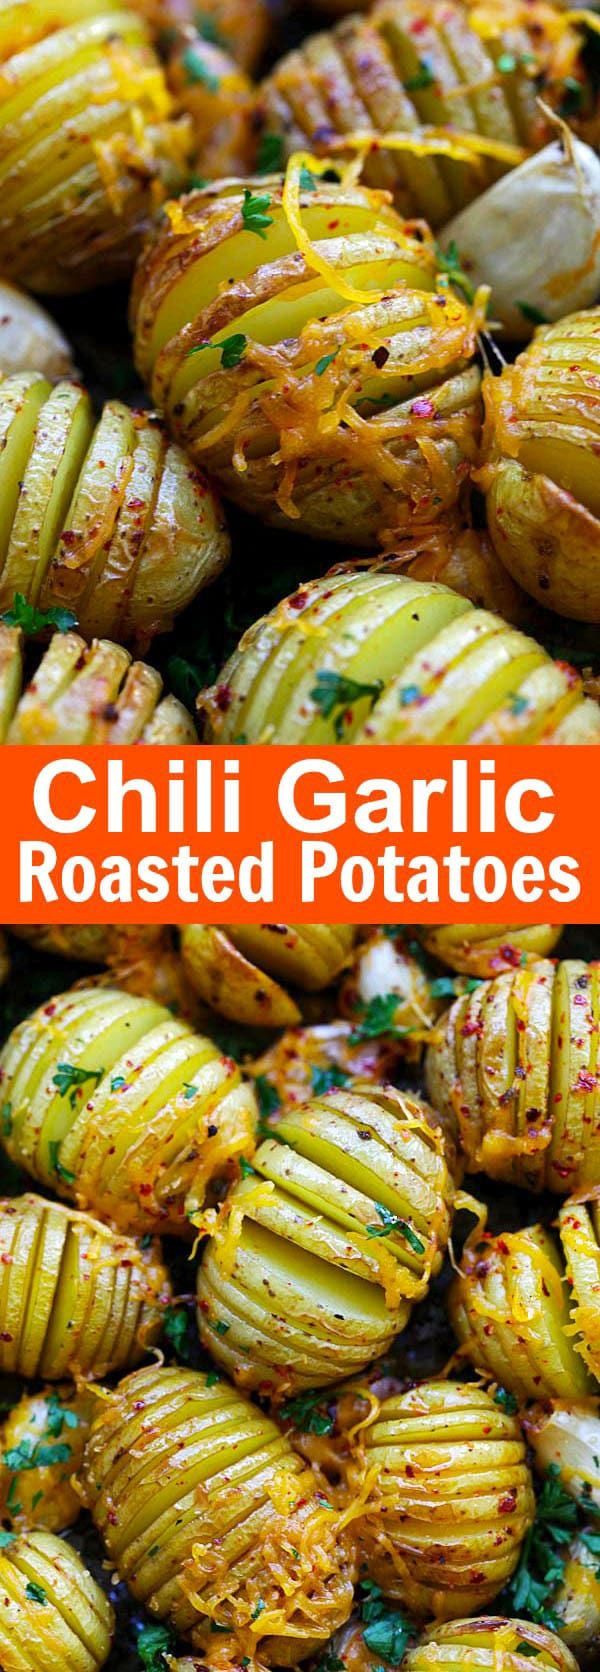 Chili Garlic Roasted Potatoes – jazz up regular garlic roasted potatoes with chili for extra kick. Cheesy and buttery goodness that you can't stop eating | rasamalaysia.com